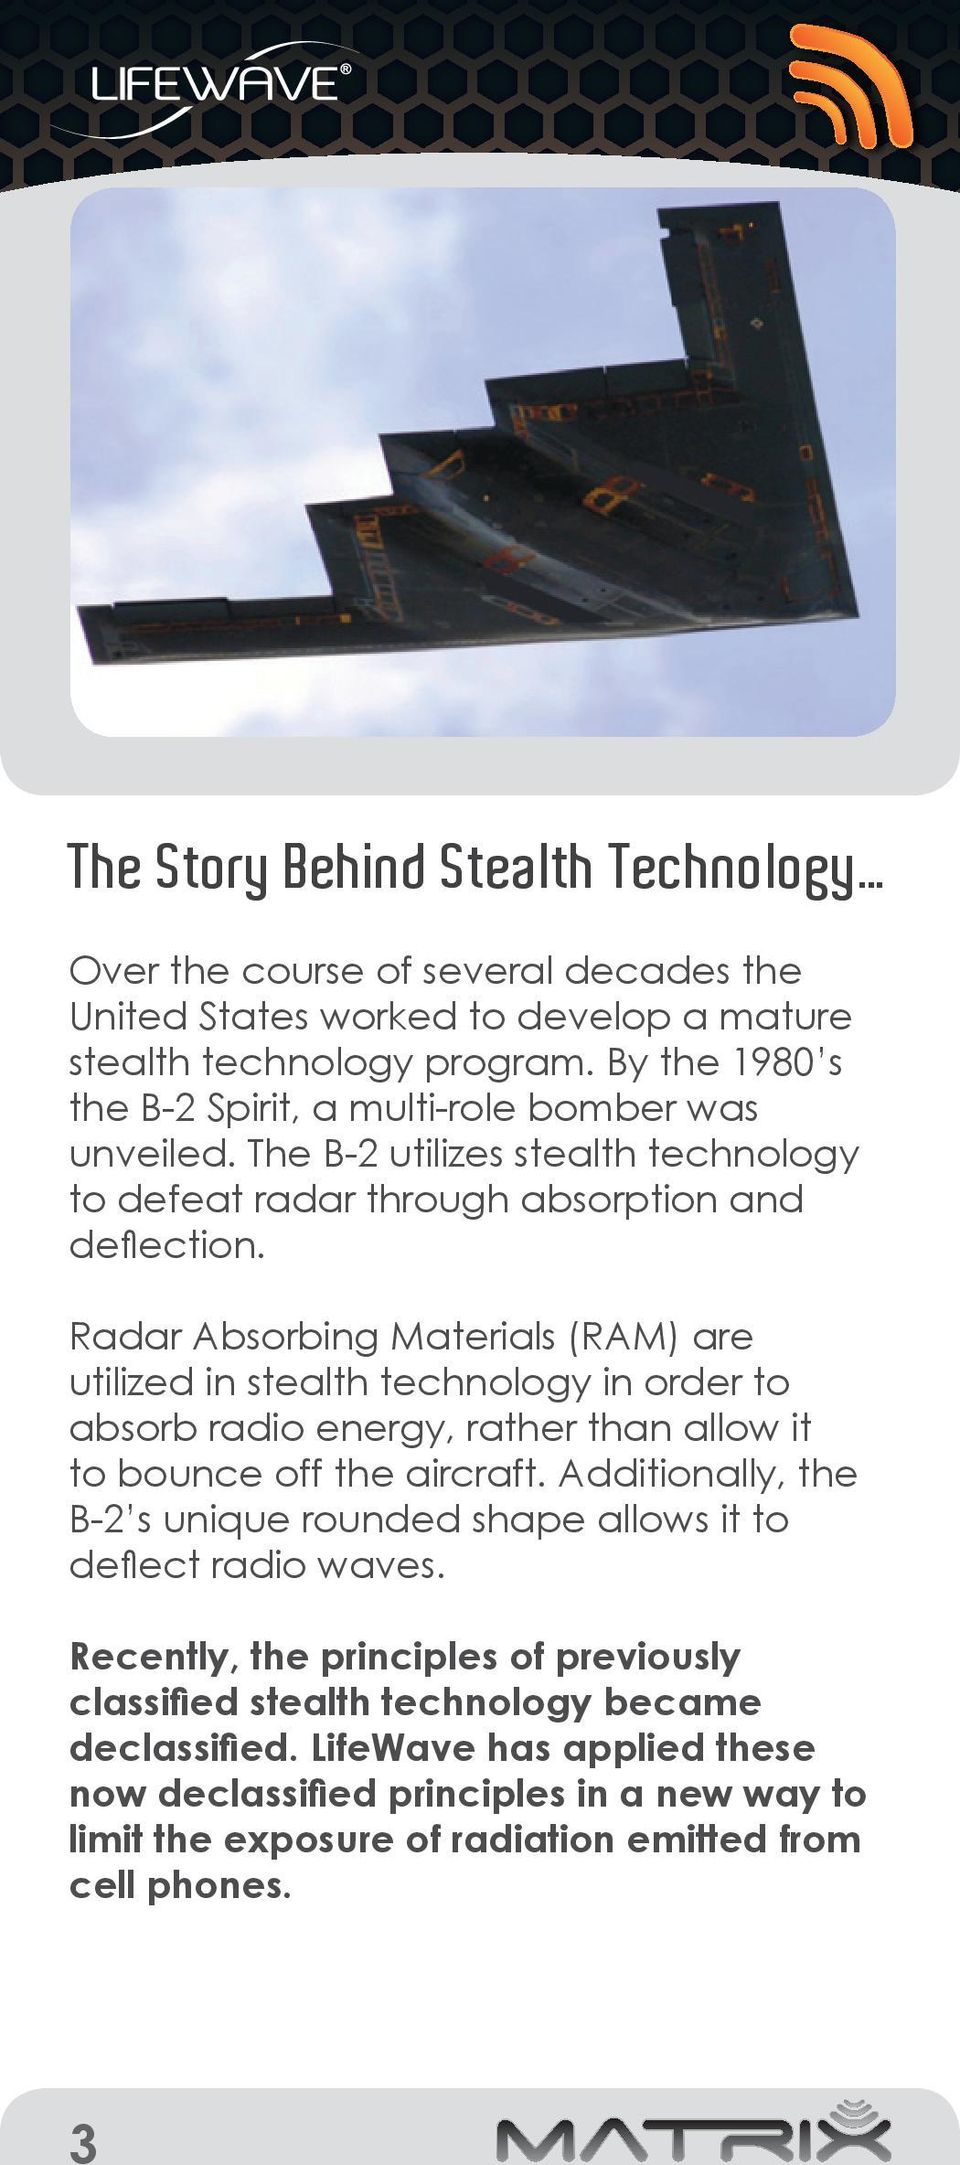 Radar Absorbing Materials (RAM) are utilized in stealth technology in order to absorb radio energy, rather than allow it to bounce off the aircraft.